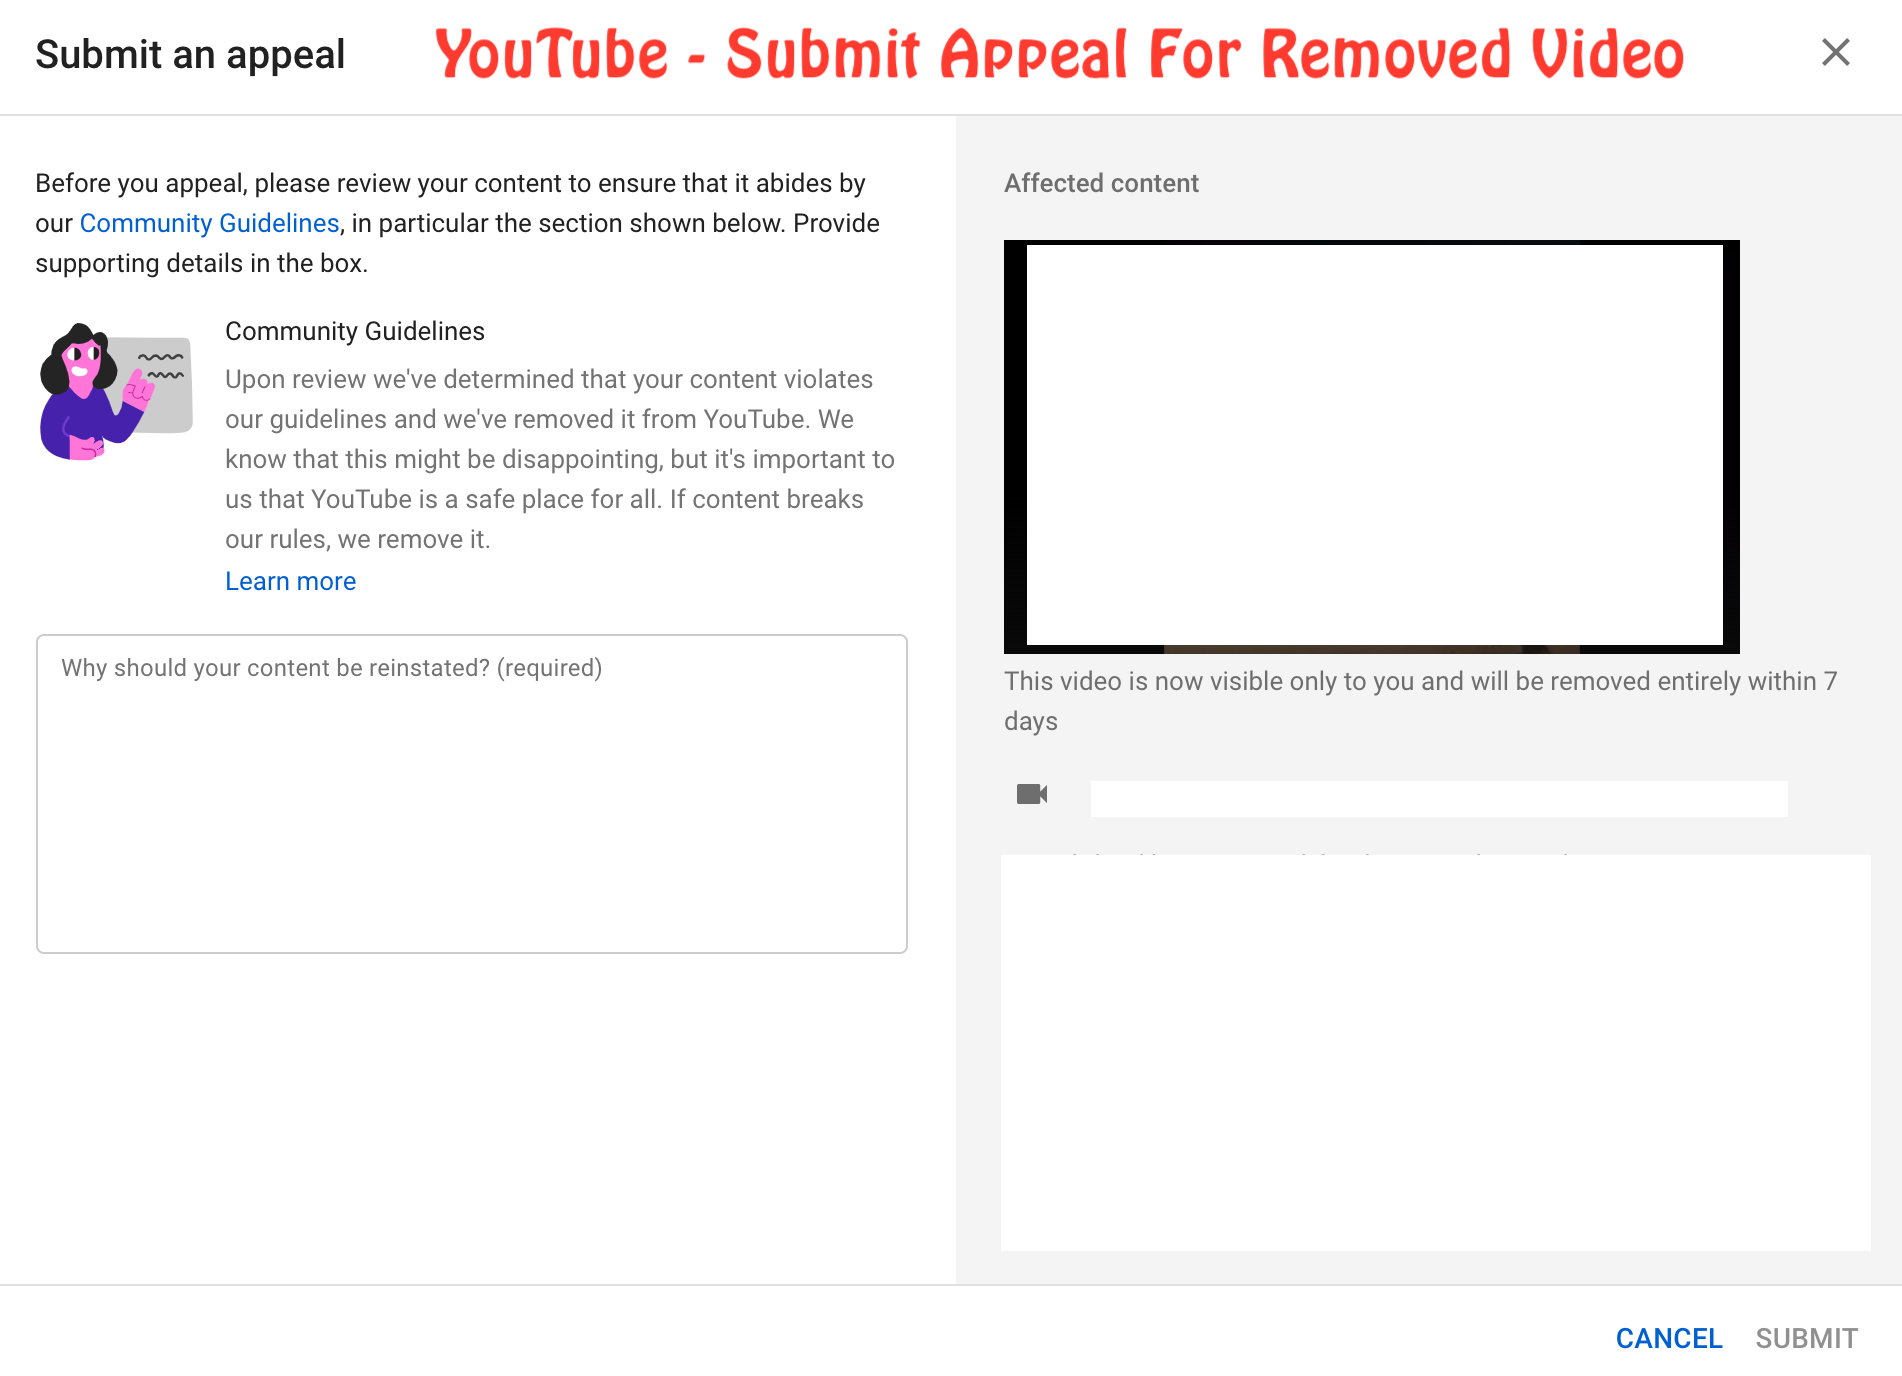 youtube-submit-appeal-removed-video.png